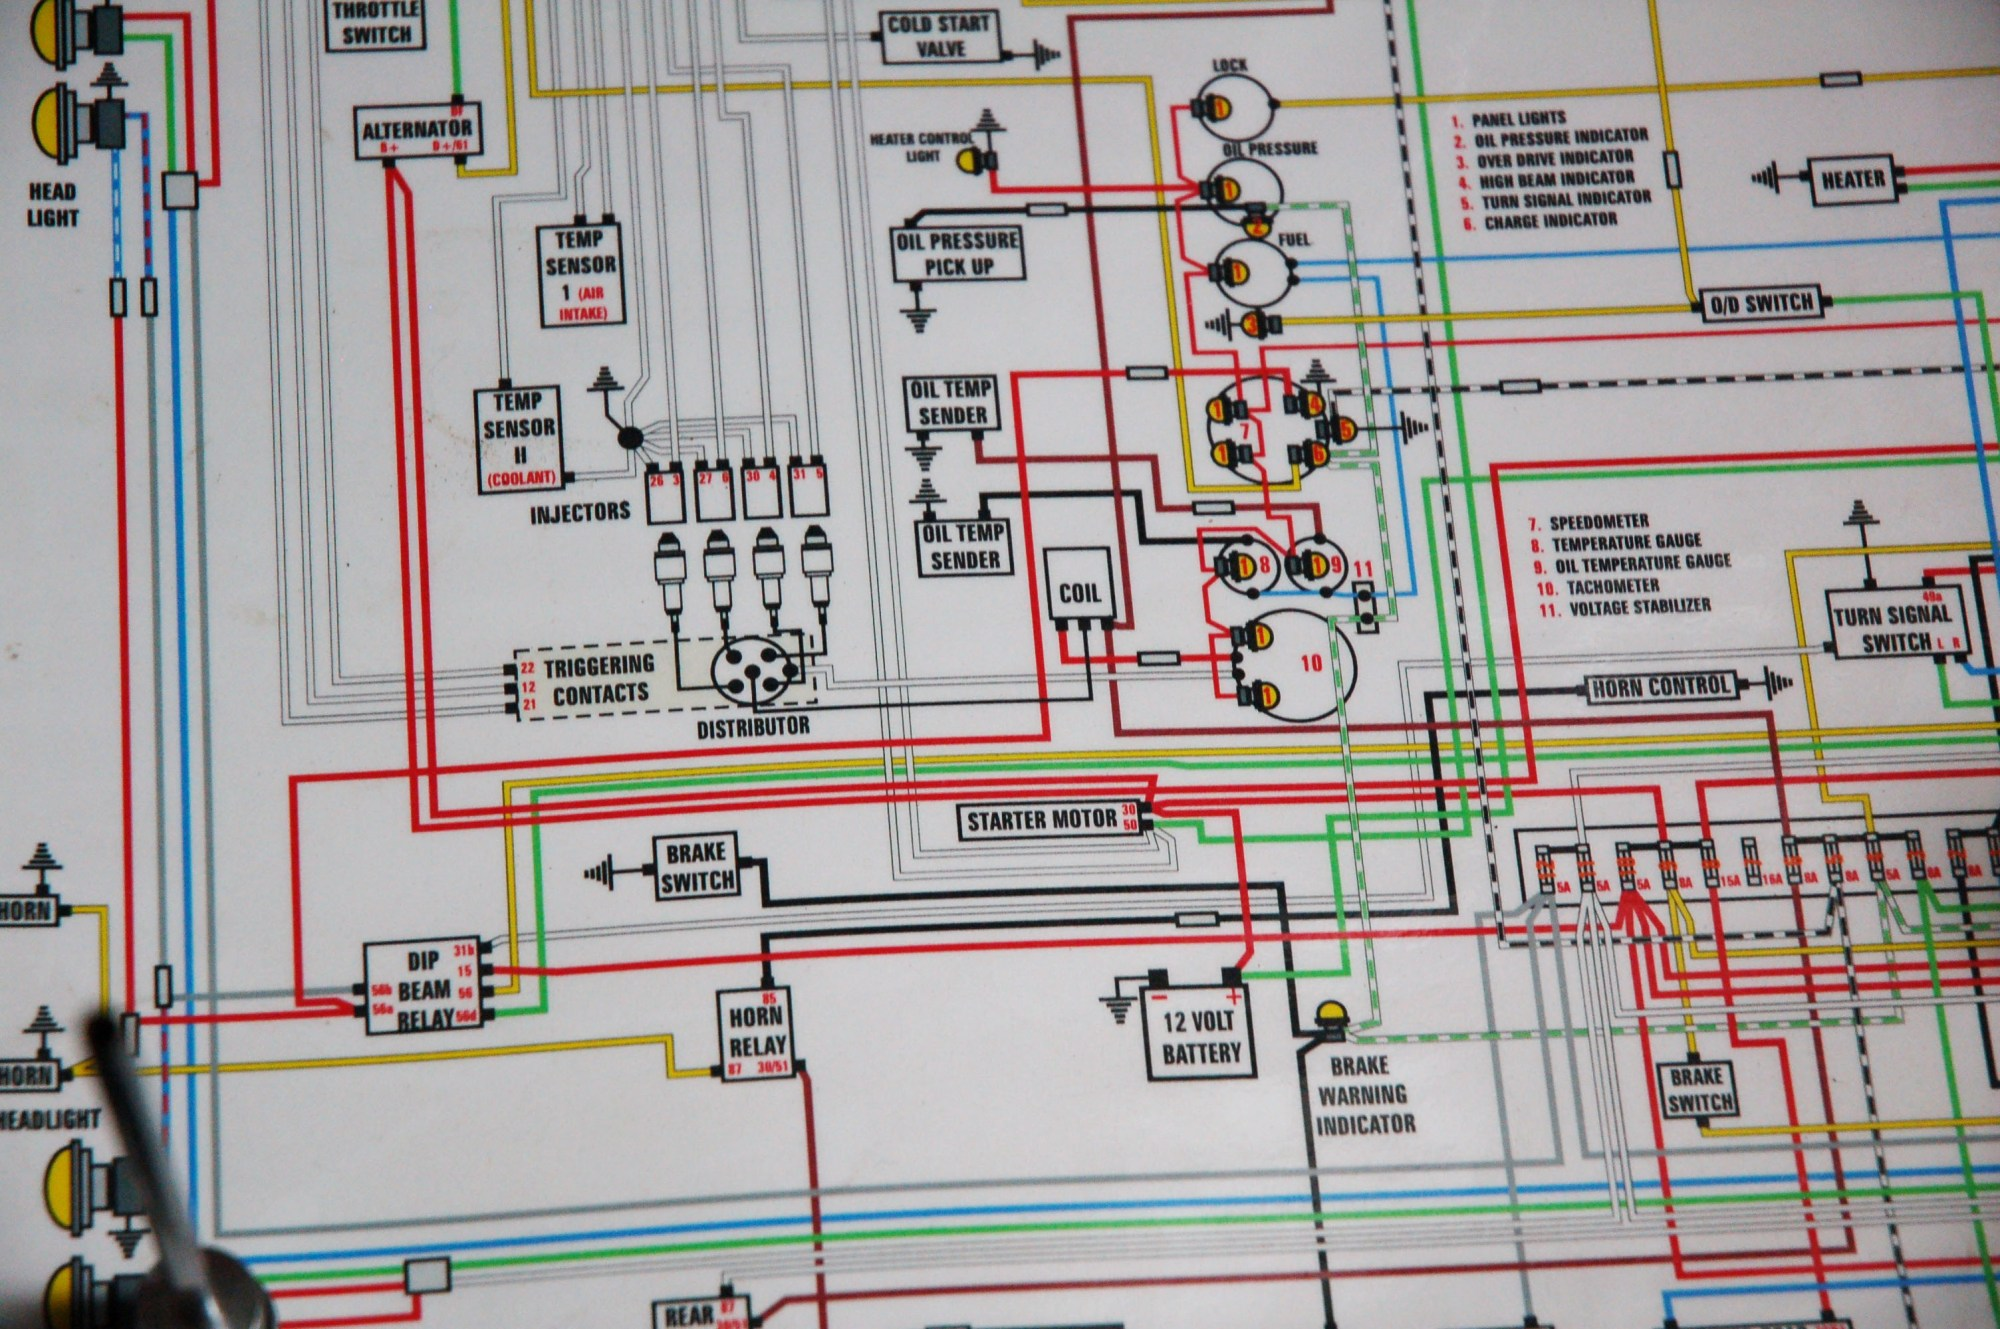 hight resolution of painless wiring install simple wiring schema painless wiring mopar painless wiring color